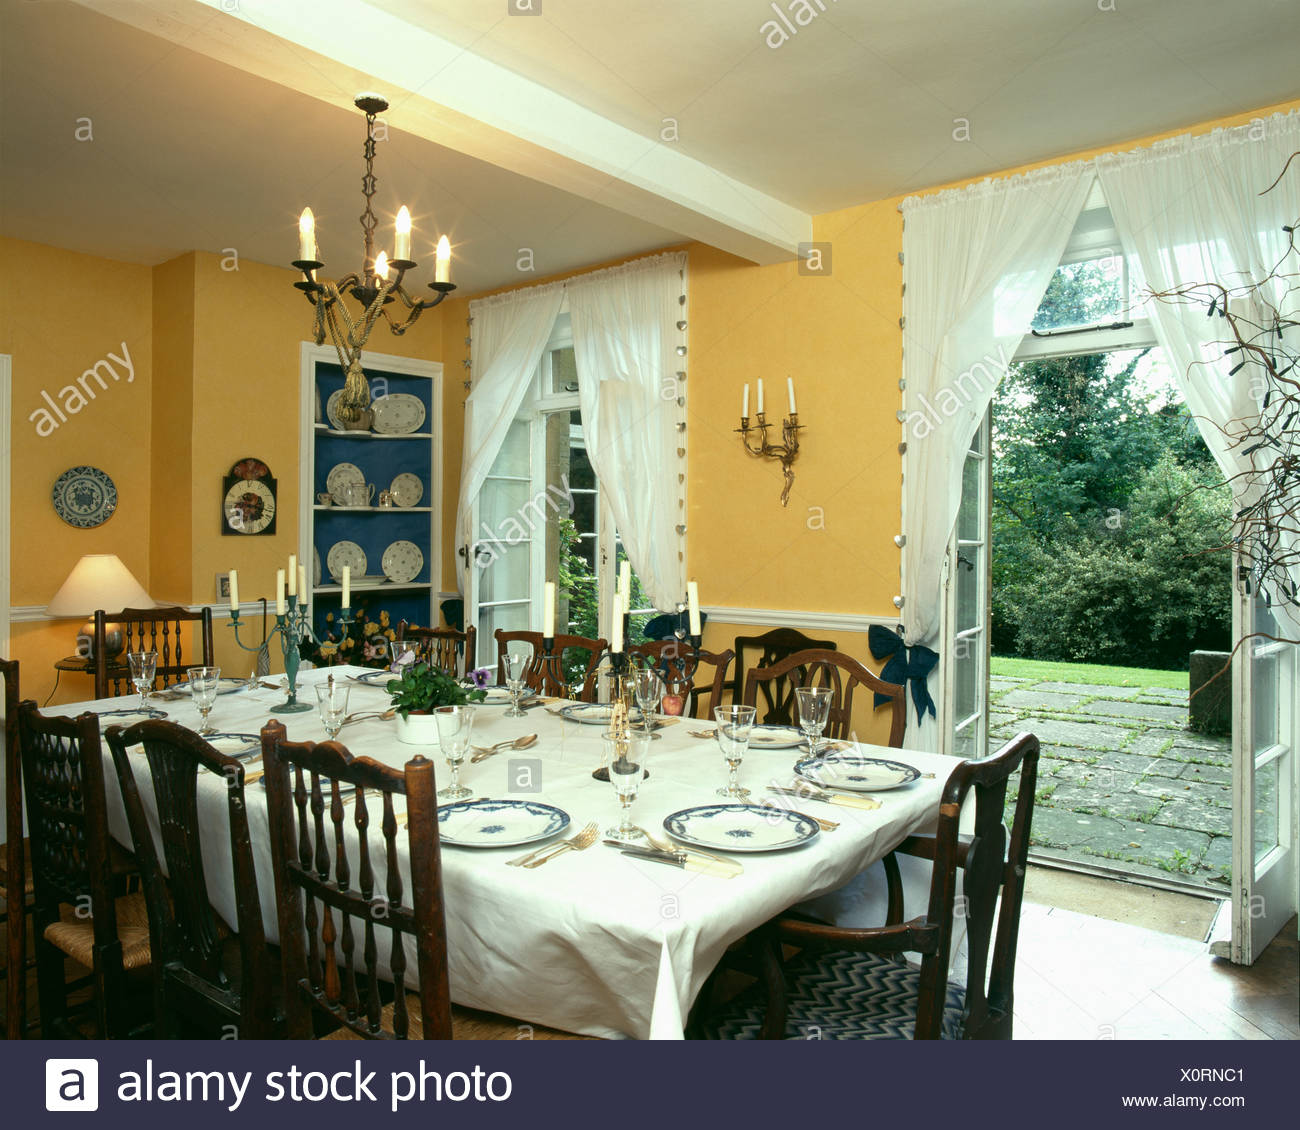 Yellow Dining Room With Table Settings And Open Door To Garden